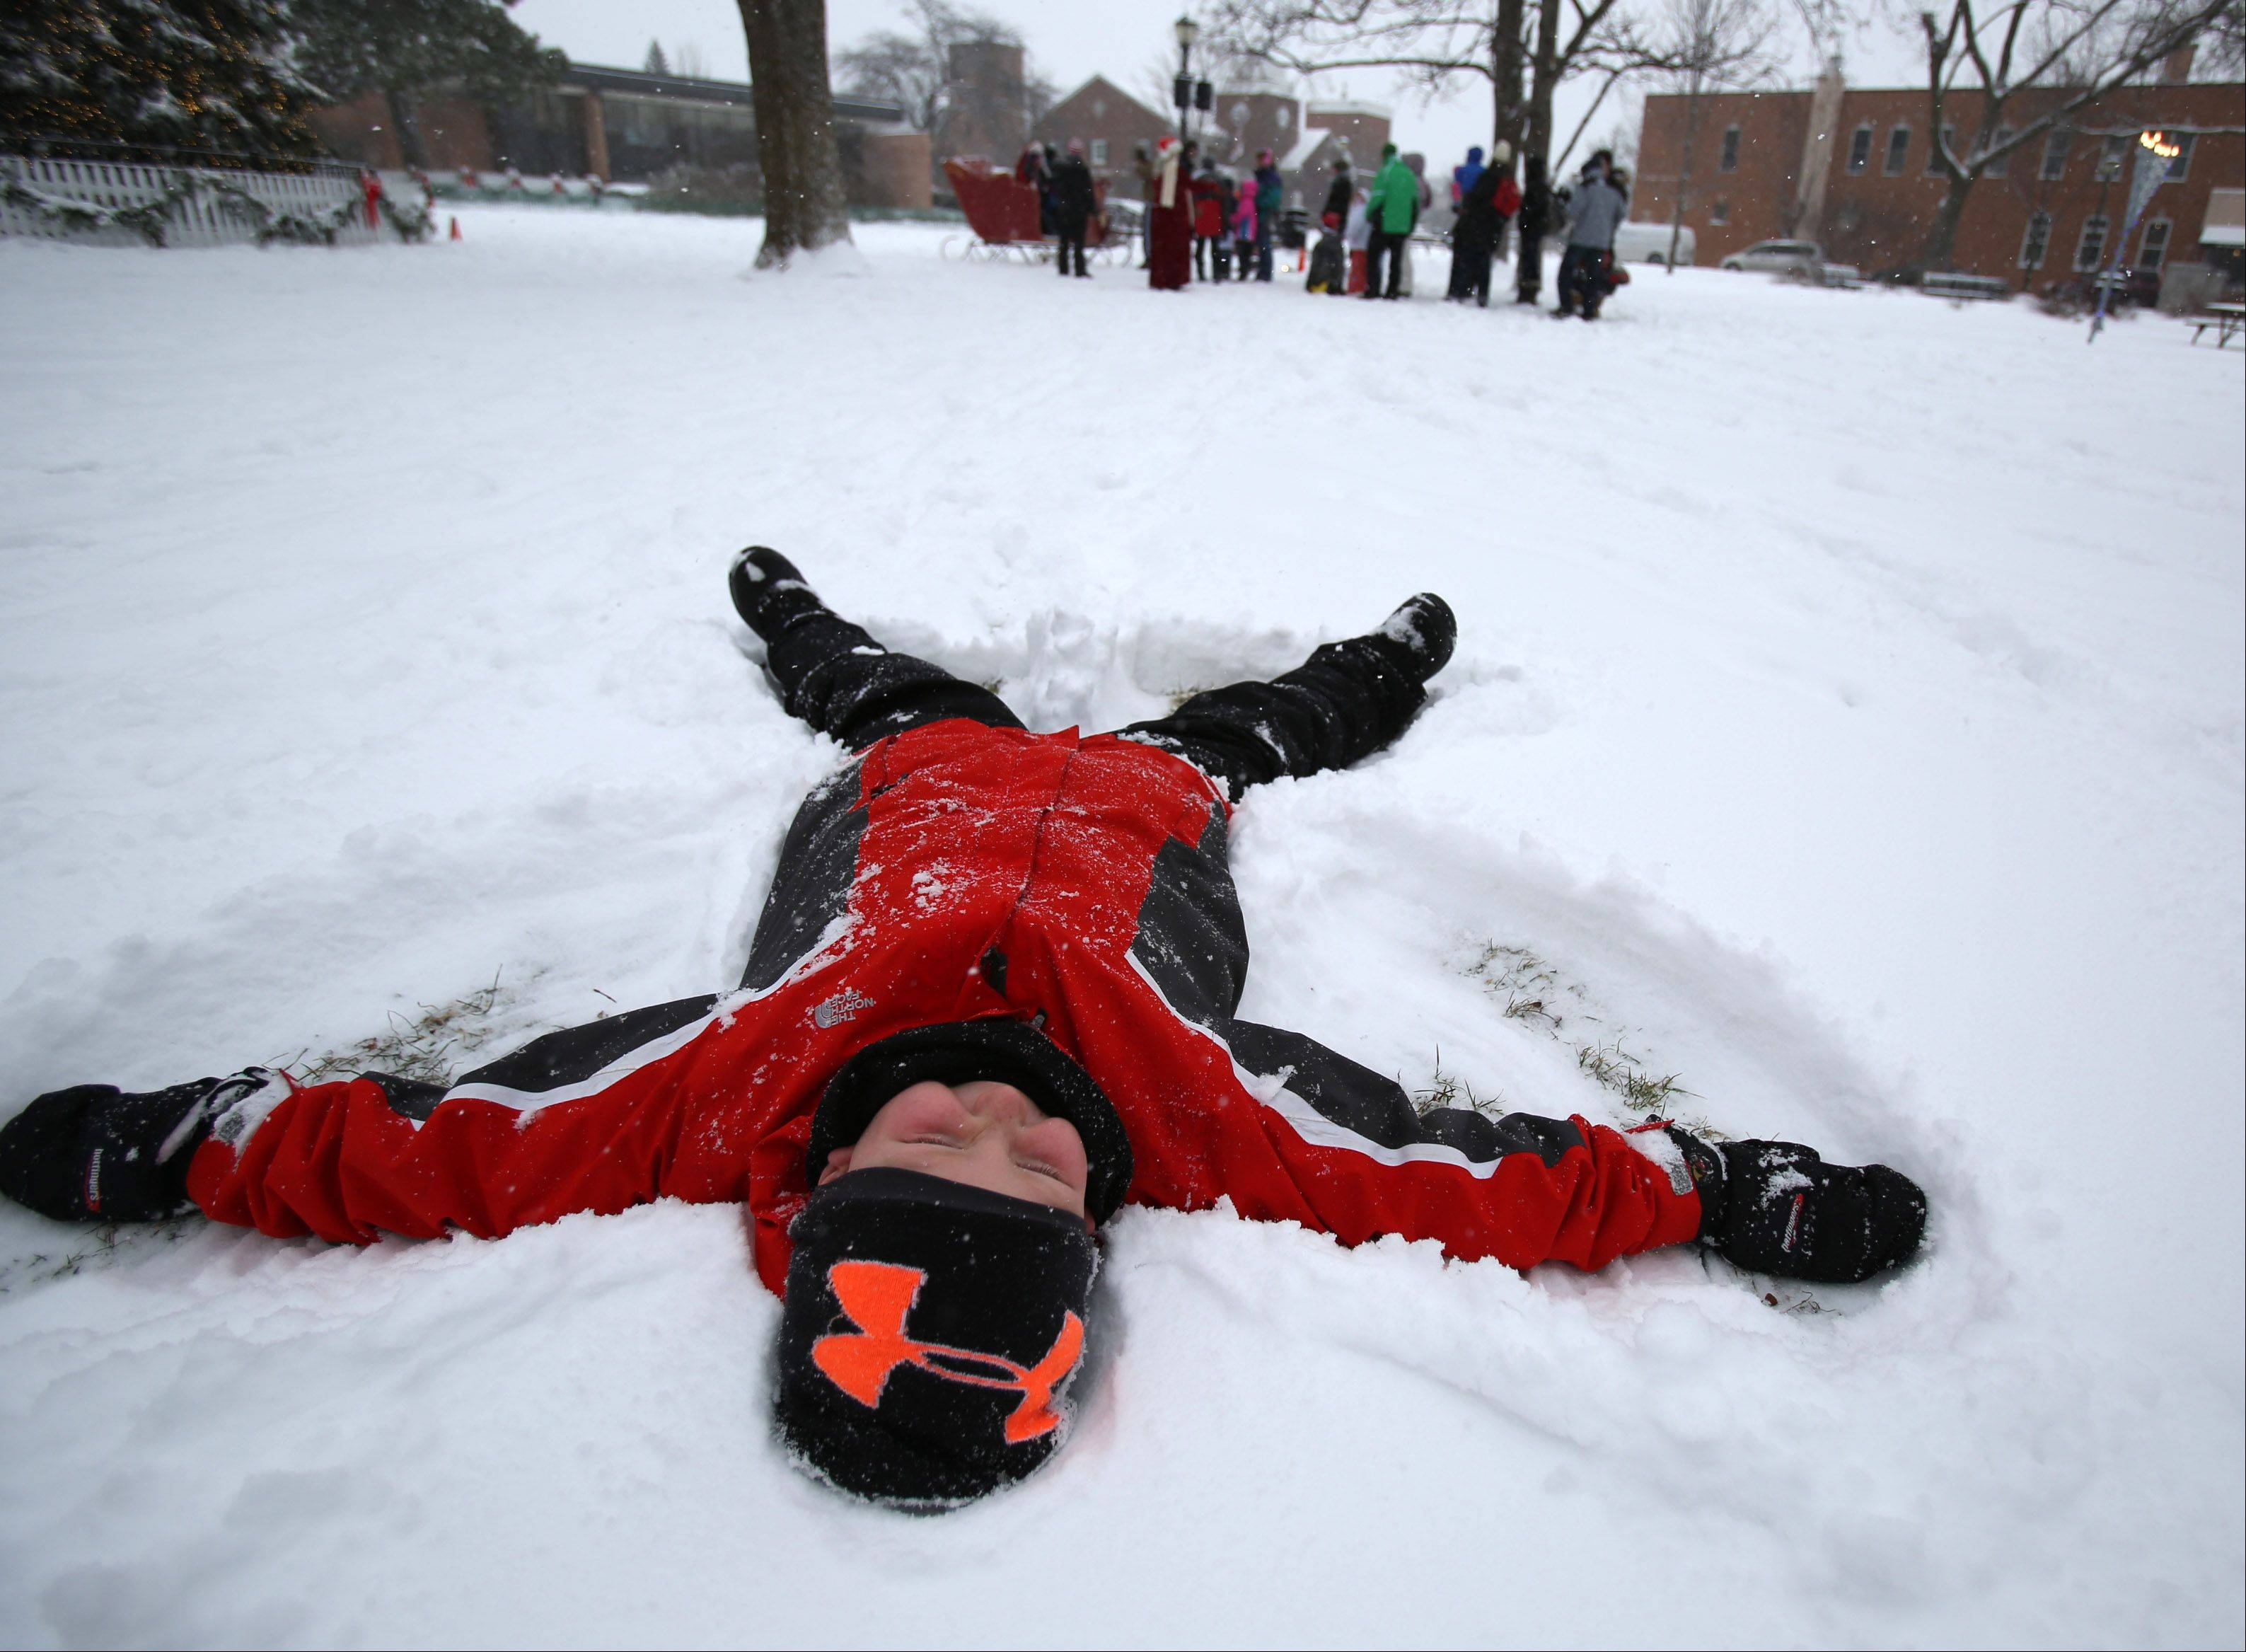 Ethan Schoenfeld, 9, of Libertyville makes a snow angel after visiting with Santa Claus in Cook Park during Dickens of a Holiday Festival on Saturday in Libertyville.